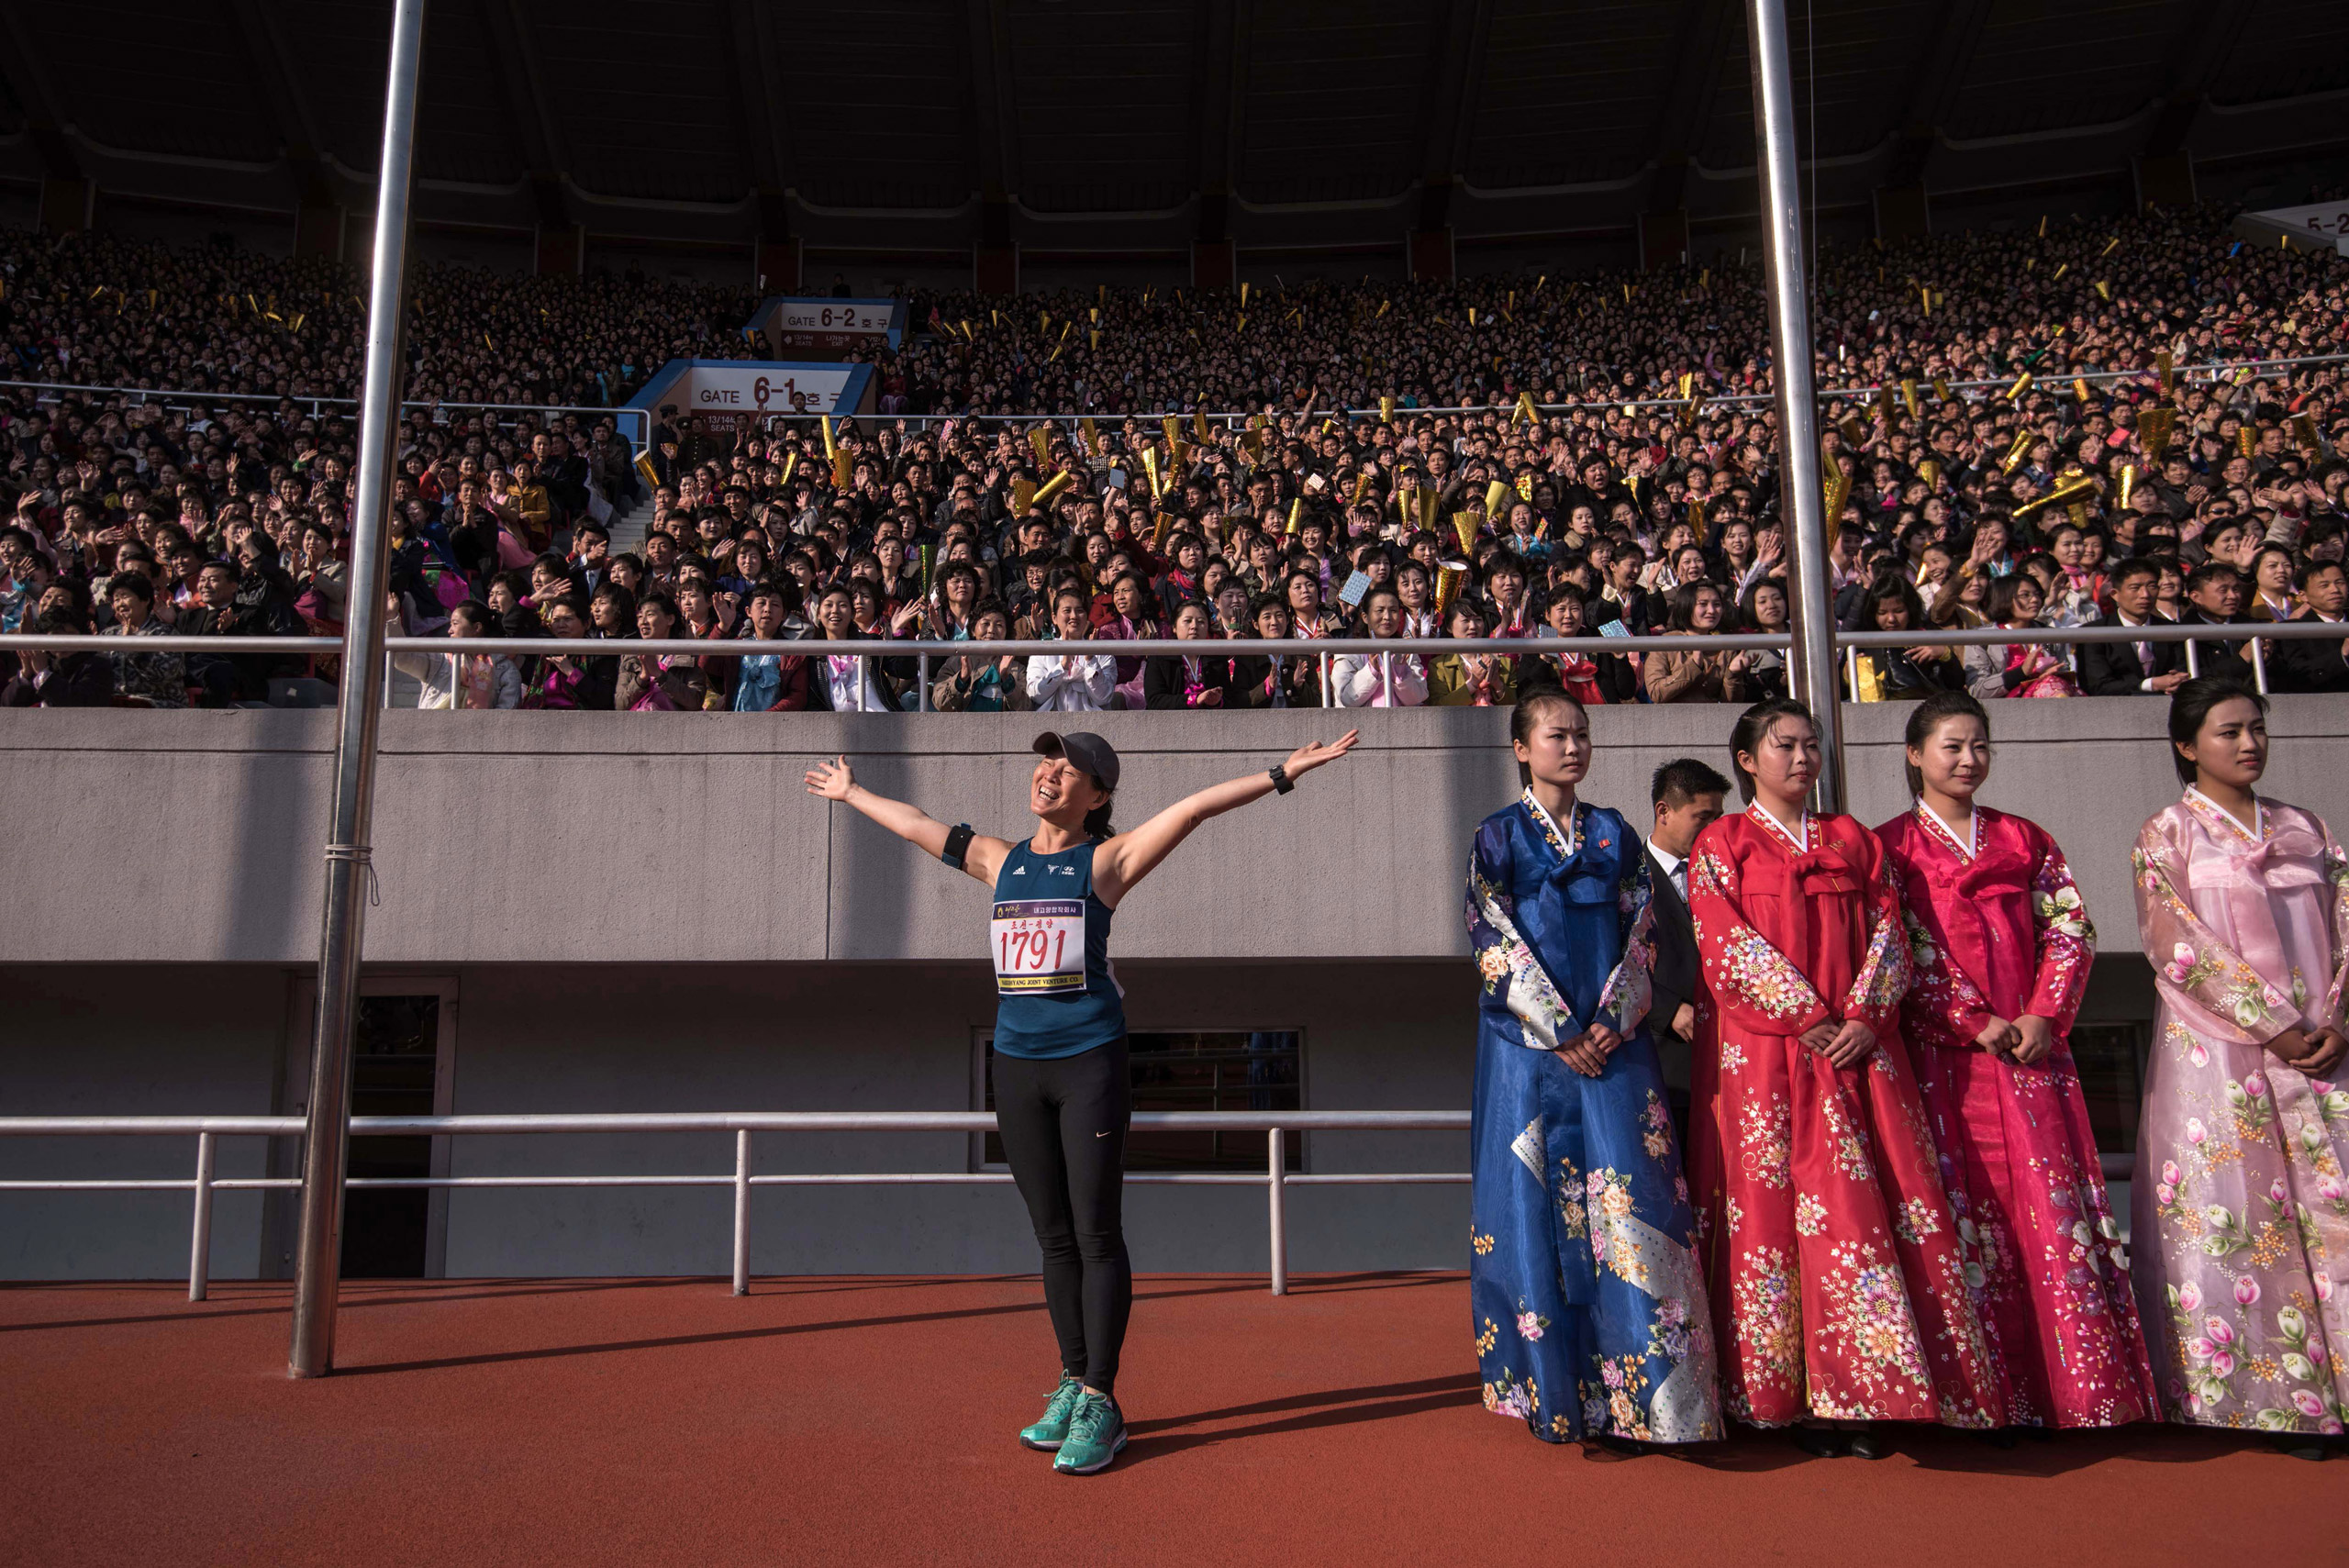 A foreign competitor poses for a photo prior to the start of the Pyongyang Marathon at Kim Il-Sung stadium in Pyongyang on April 9, 2017. Hundreds of foreigners lined up in Pyongyang's Kim Il-Sung Stadium on April 9 for the city's annual marathon, the highlight of the tourism calendar in isolated North Korea.